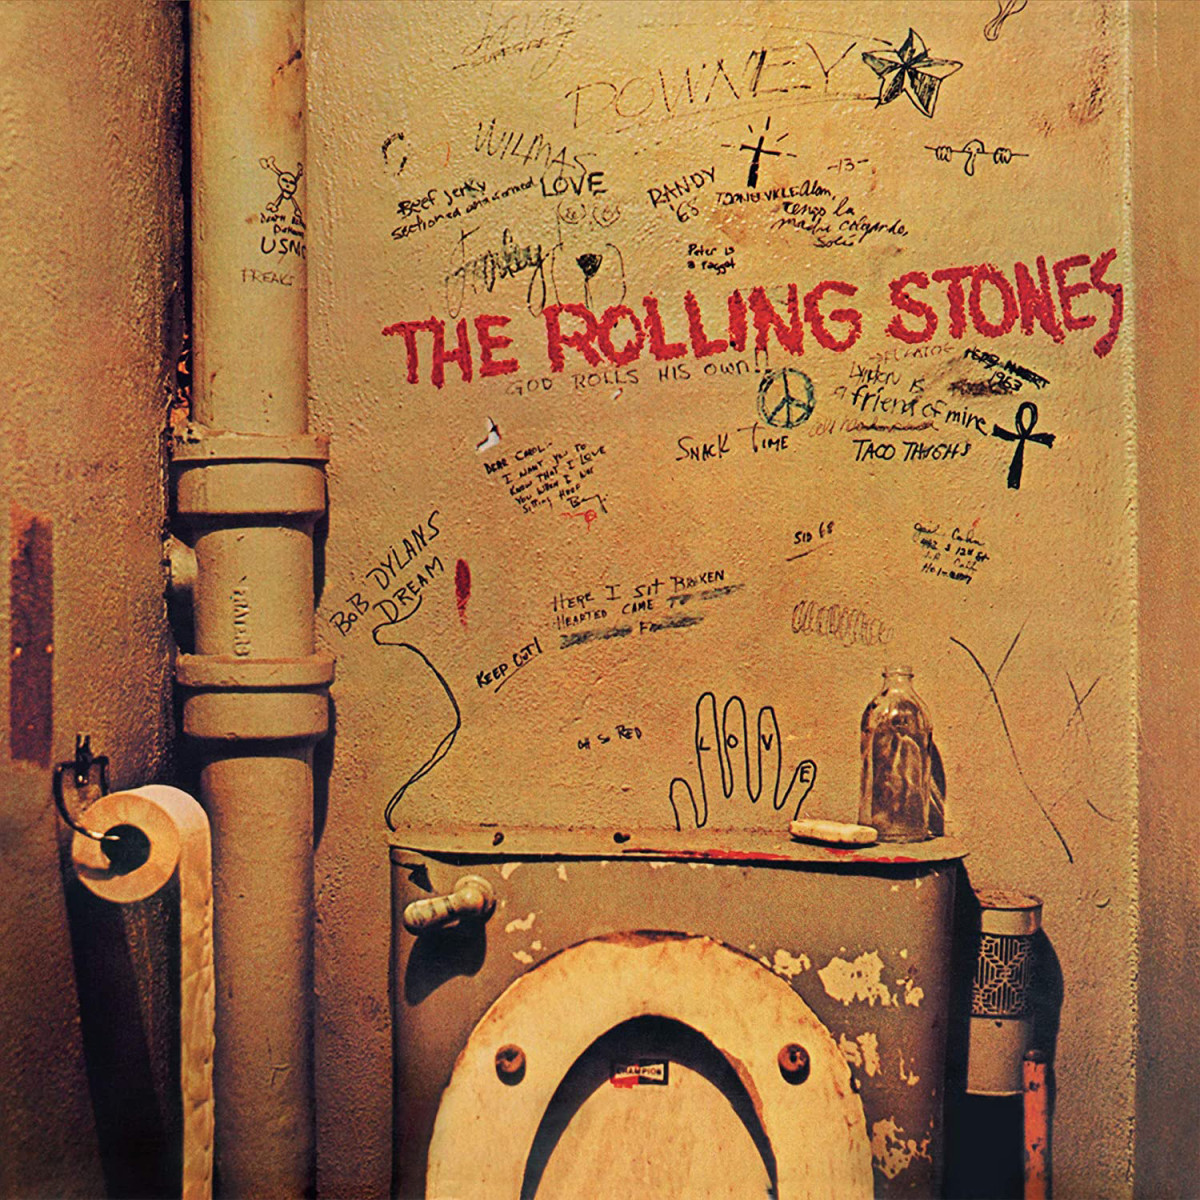 The Rolling Stones, Beggars Banquet